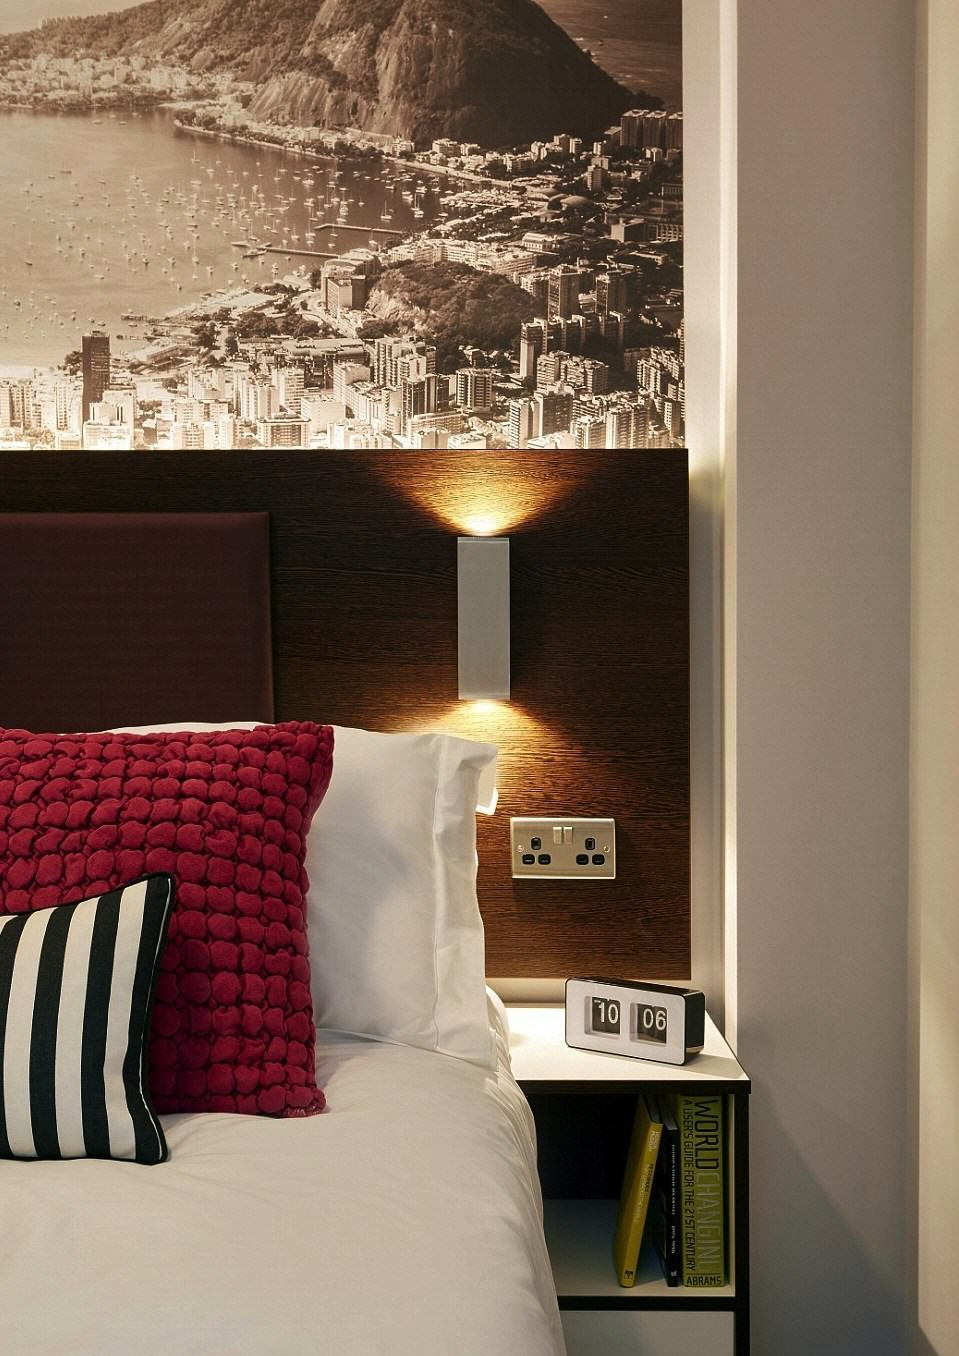 This Luxury Student Accommodation Is Definitely Nicer Than Your Halls Of Residence UNILAD 2C69CA1100000578 0 image a 34 14425157694556